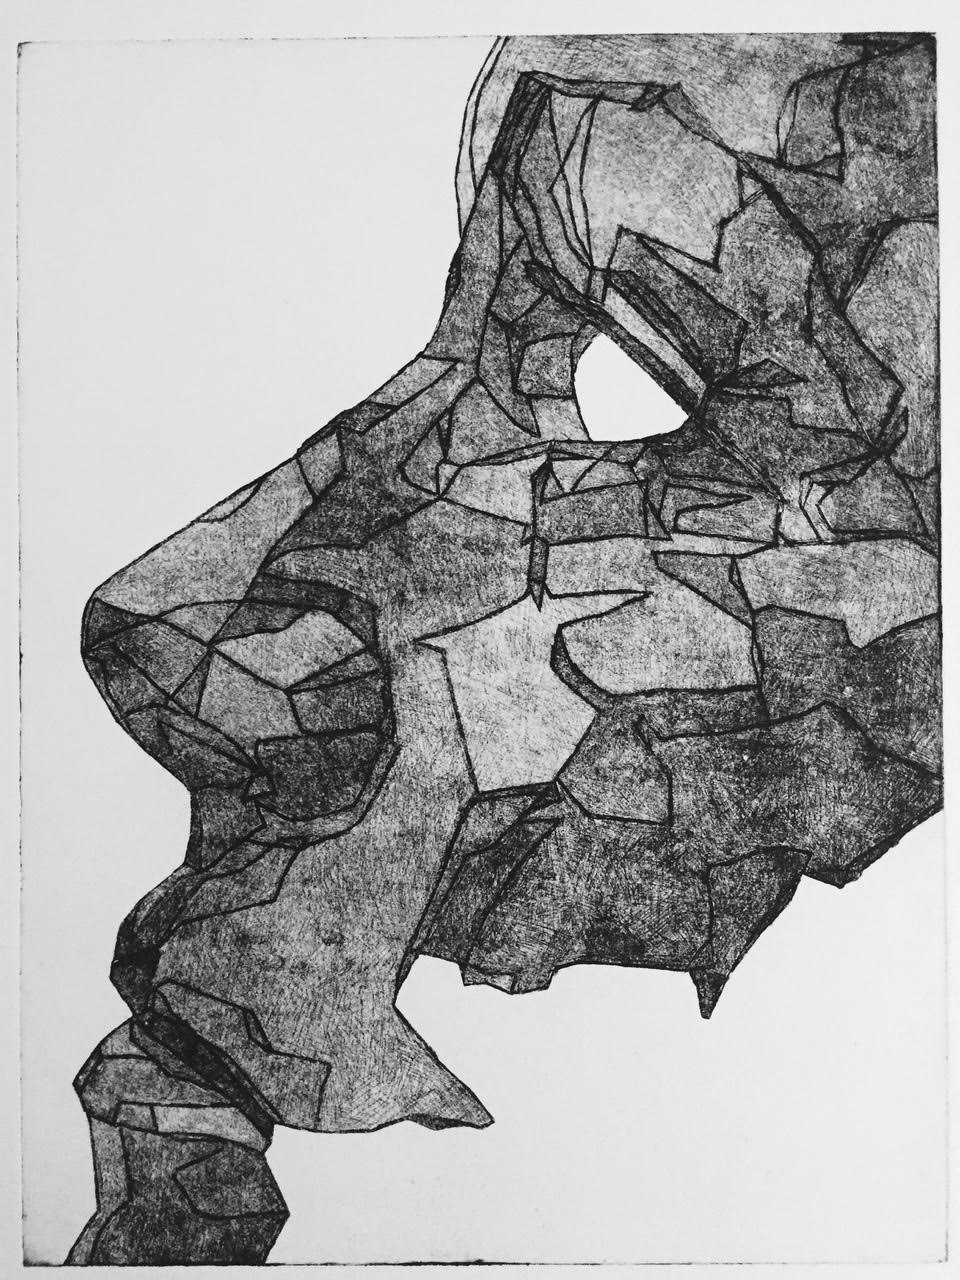 Study for Fragment II - Copper Plate EtchingEdition: 1 of 10£325.00